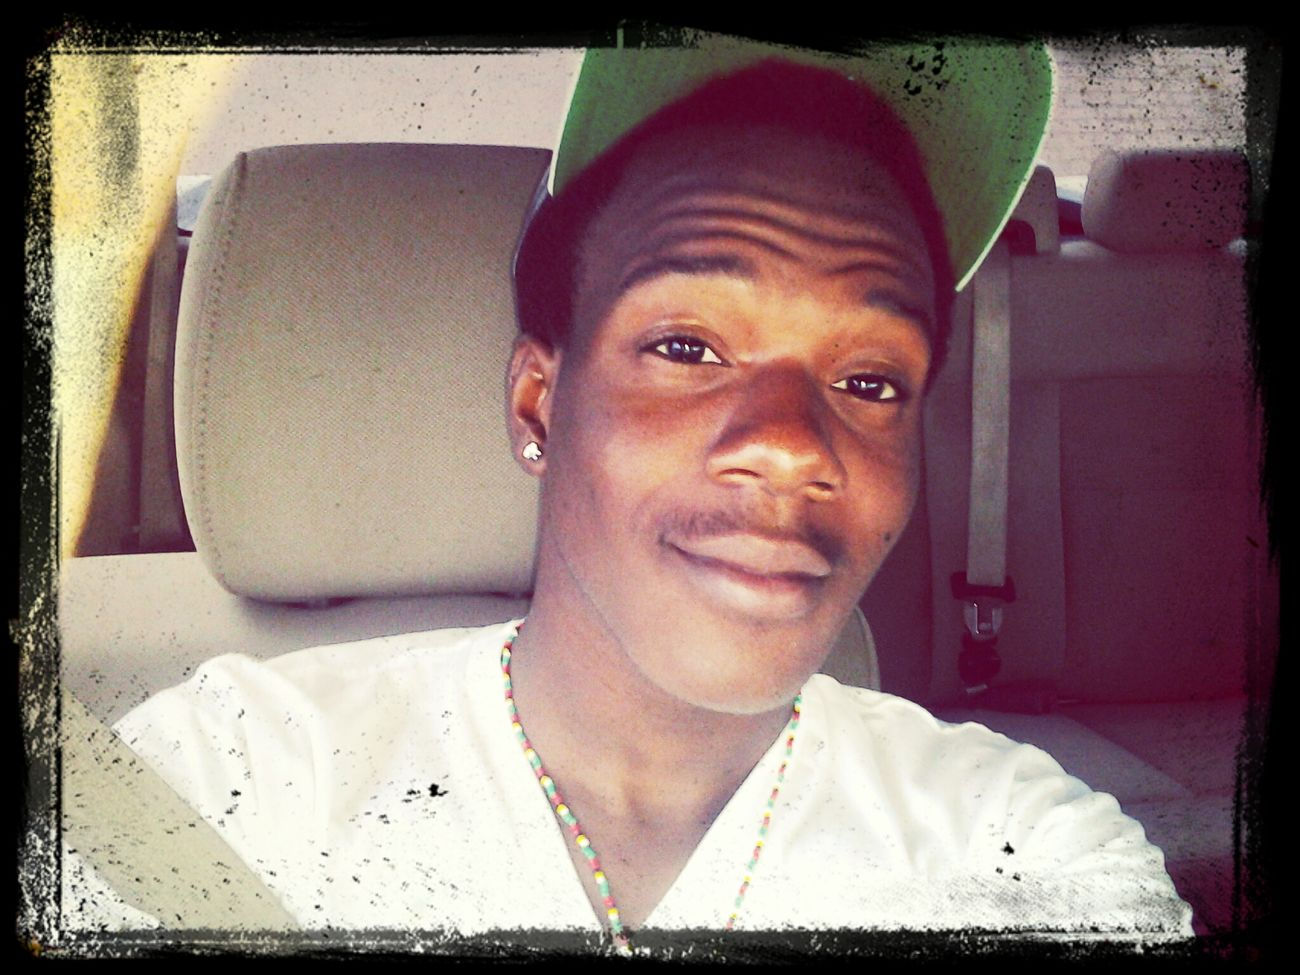 trying that smile Doe